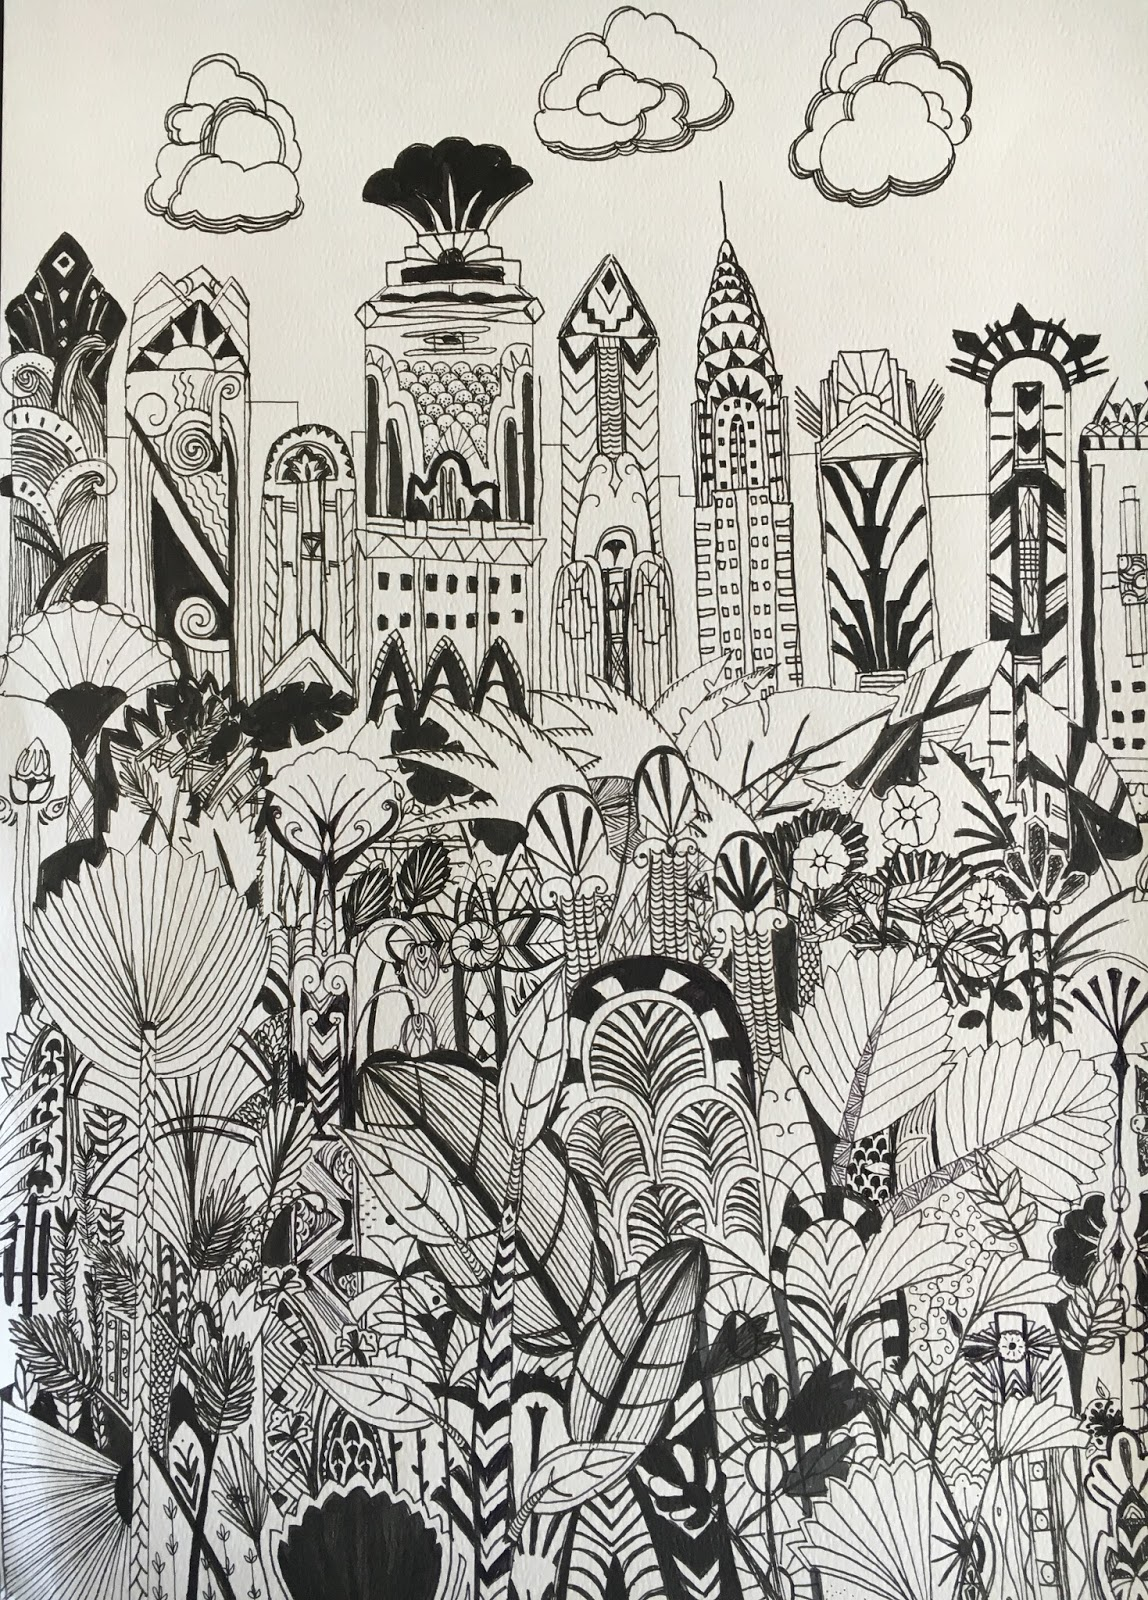 free library Sue heydenrych grade imaginative. Imagination drawing pen and ink.